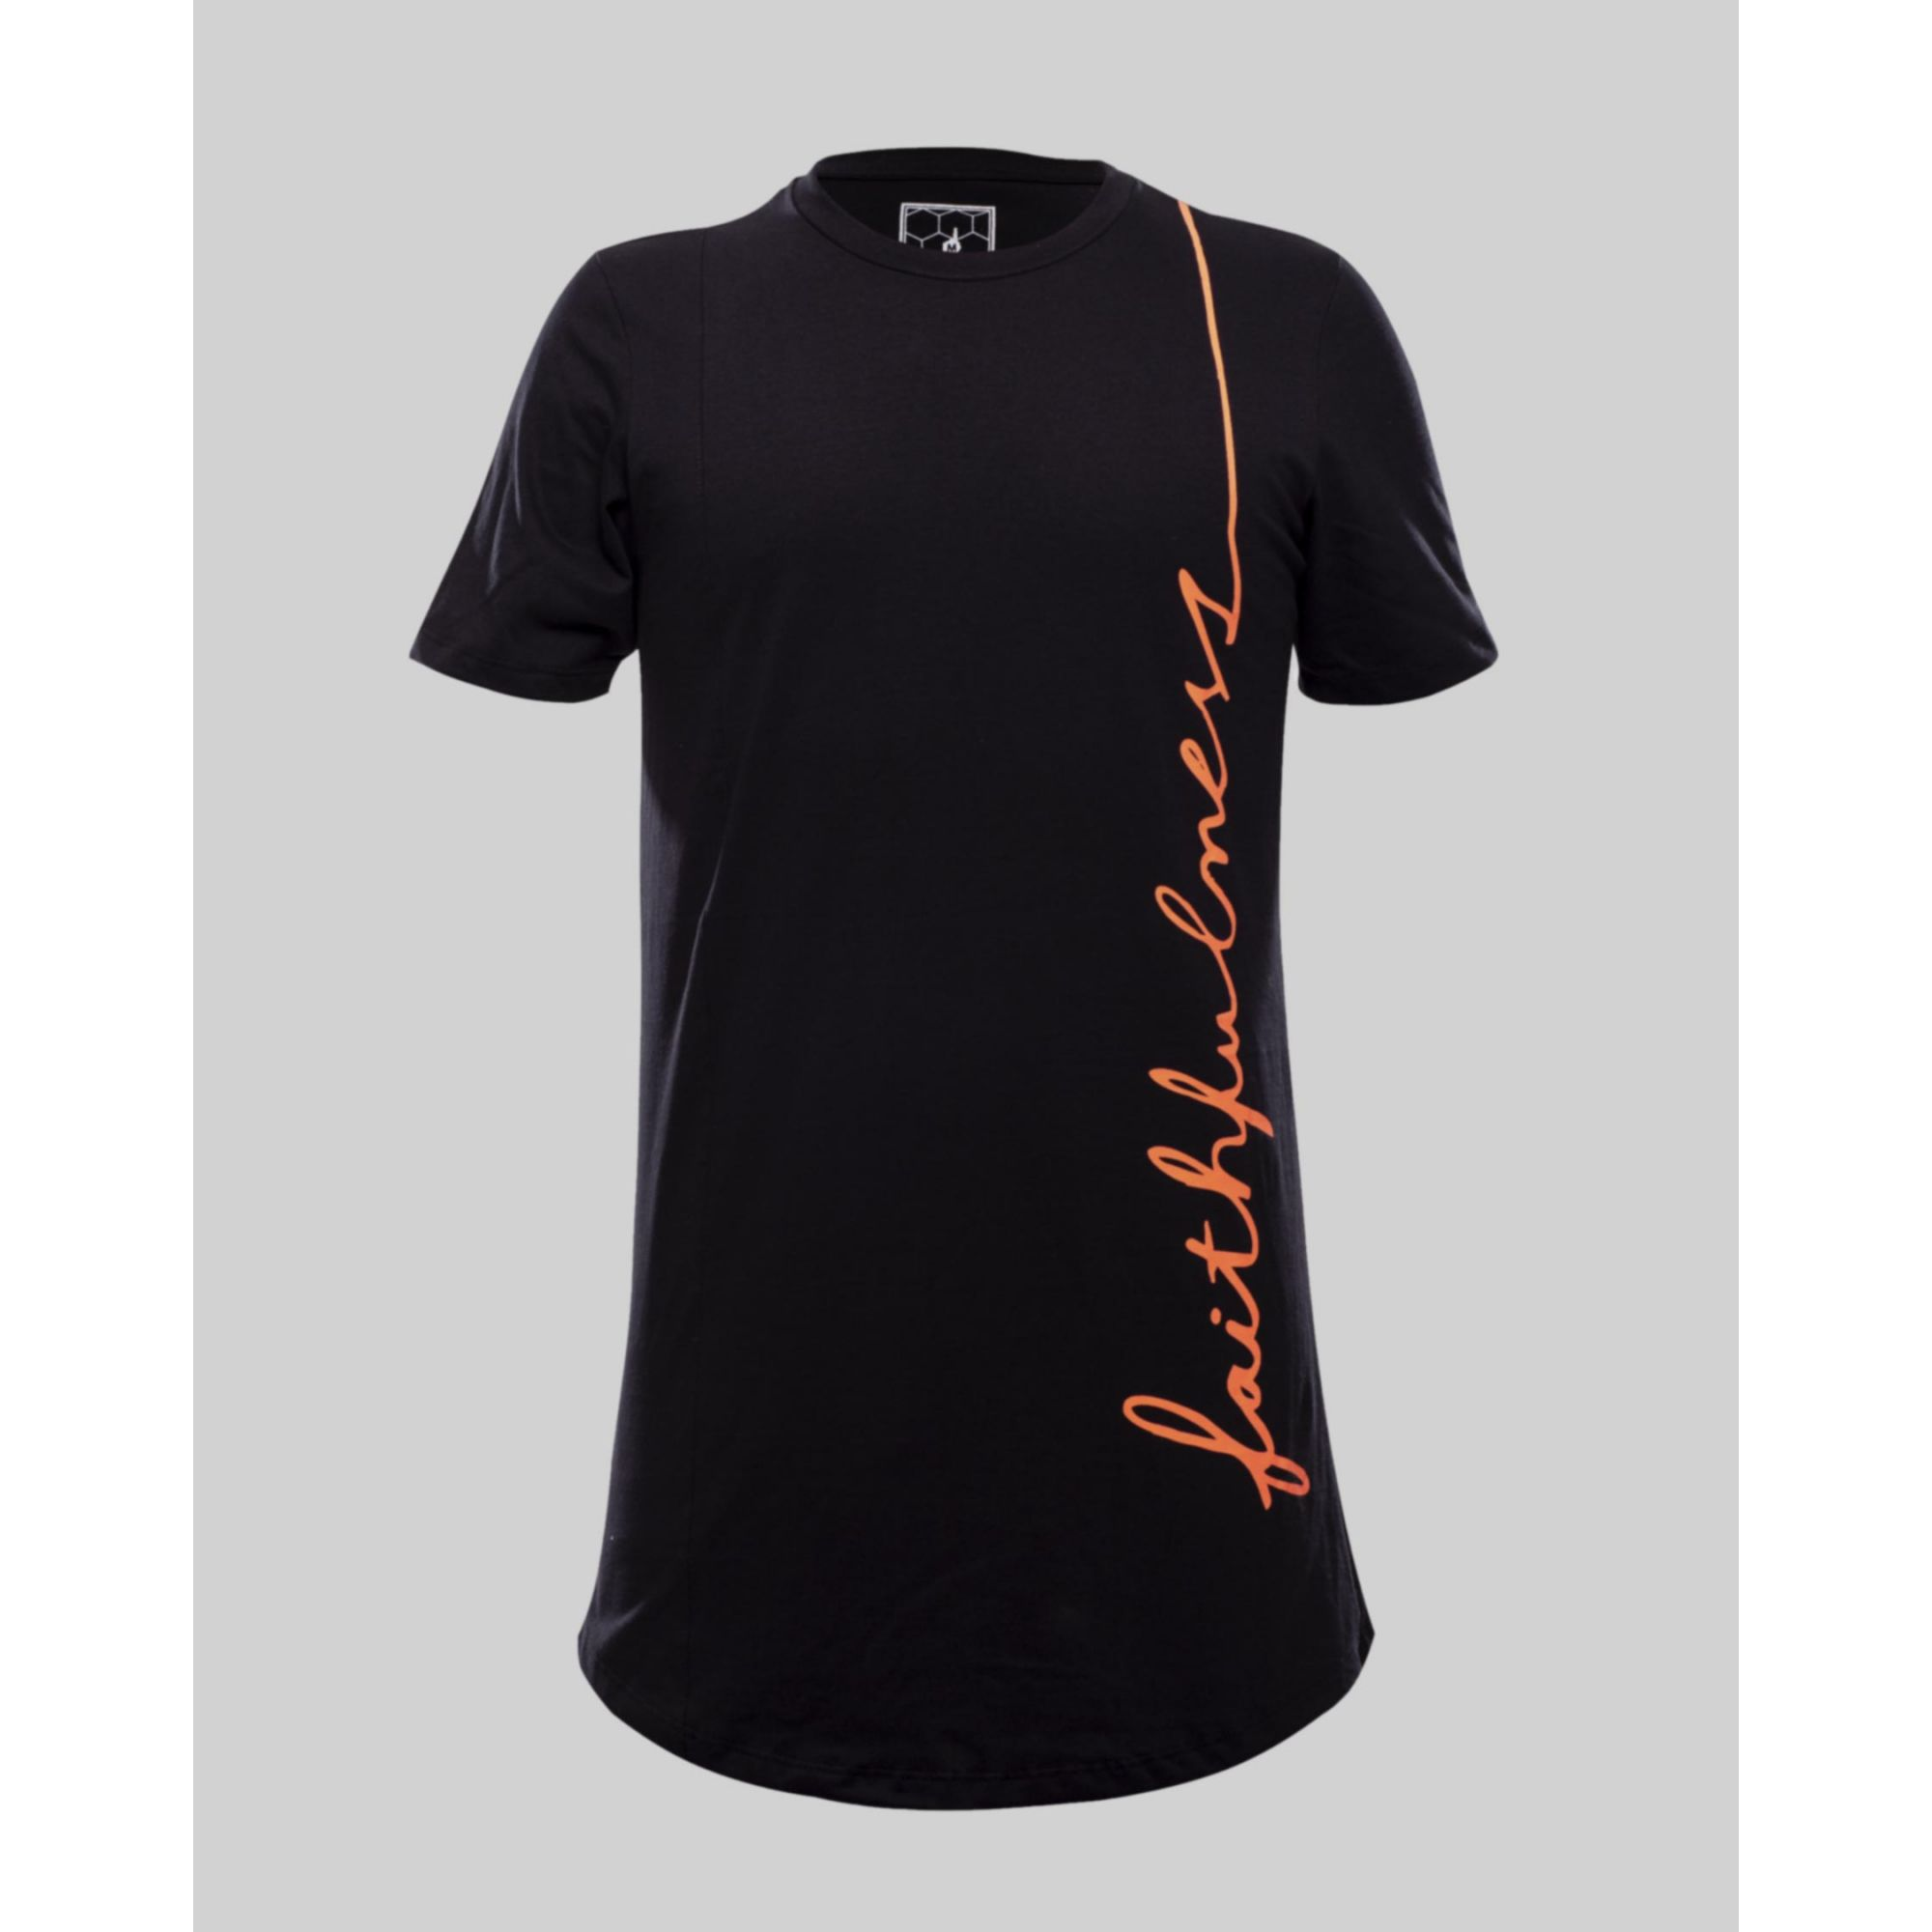 Camiseta Buh FaithFulness Fluor Black